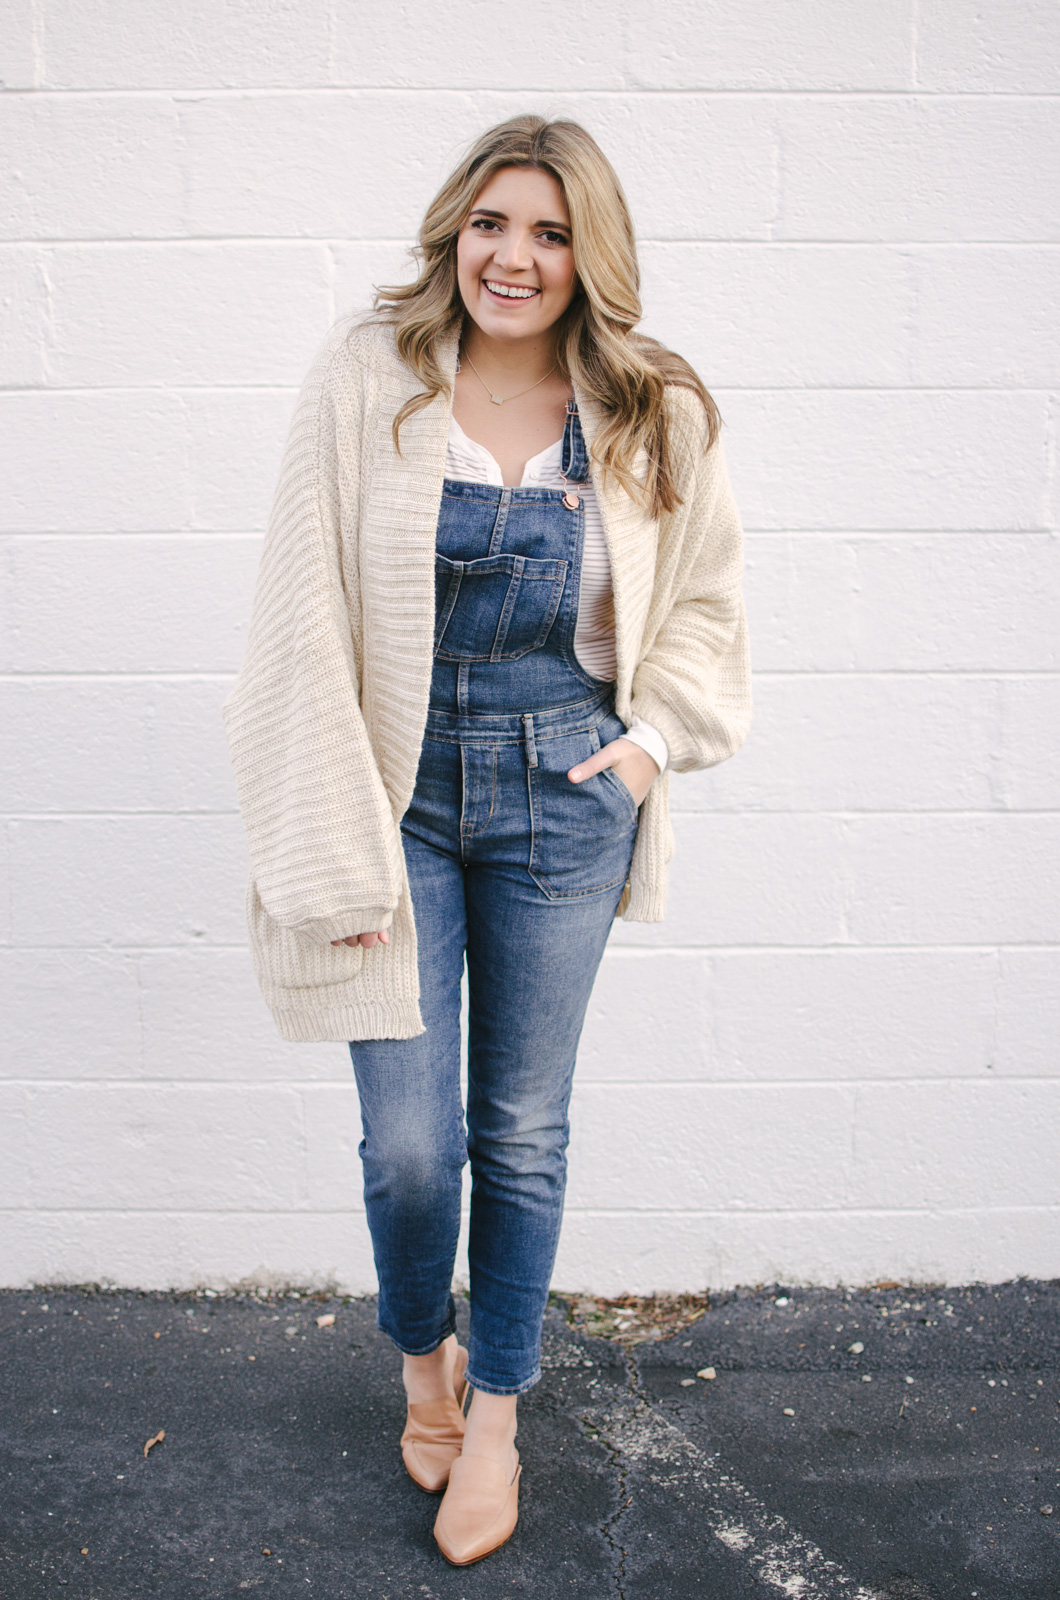 overalls outfit winter - how to wear overalls winter | Shop this look or see more cute winter outfit ideas at bylaurenm.com!